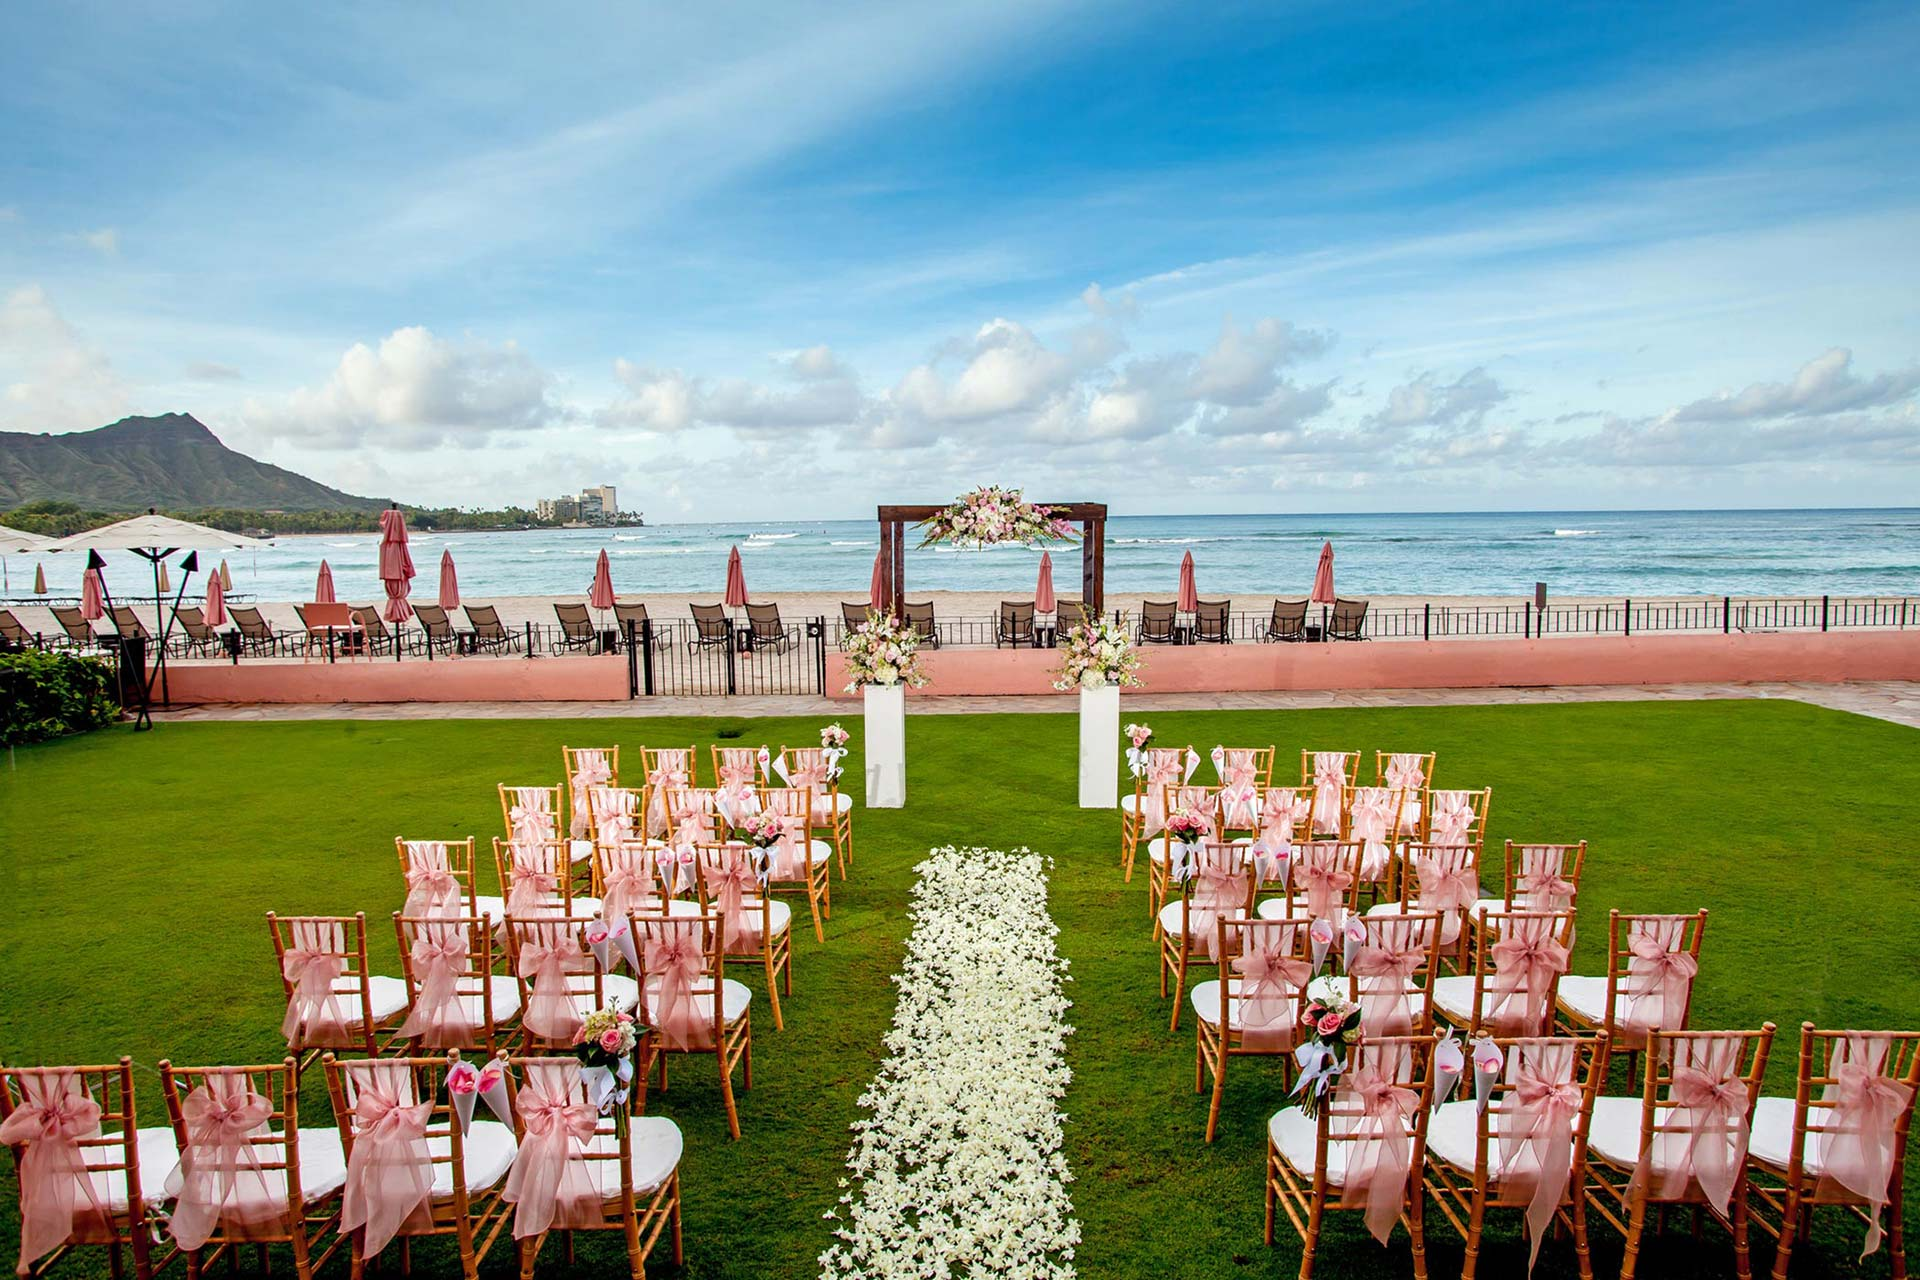 chairs and arbor setup for wedding with ocean in the background